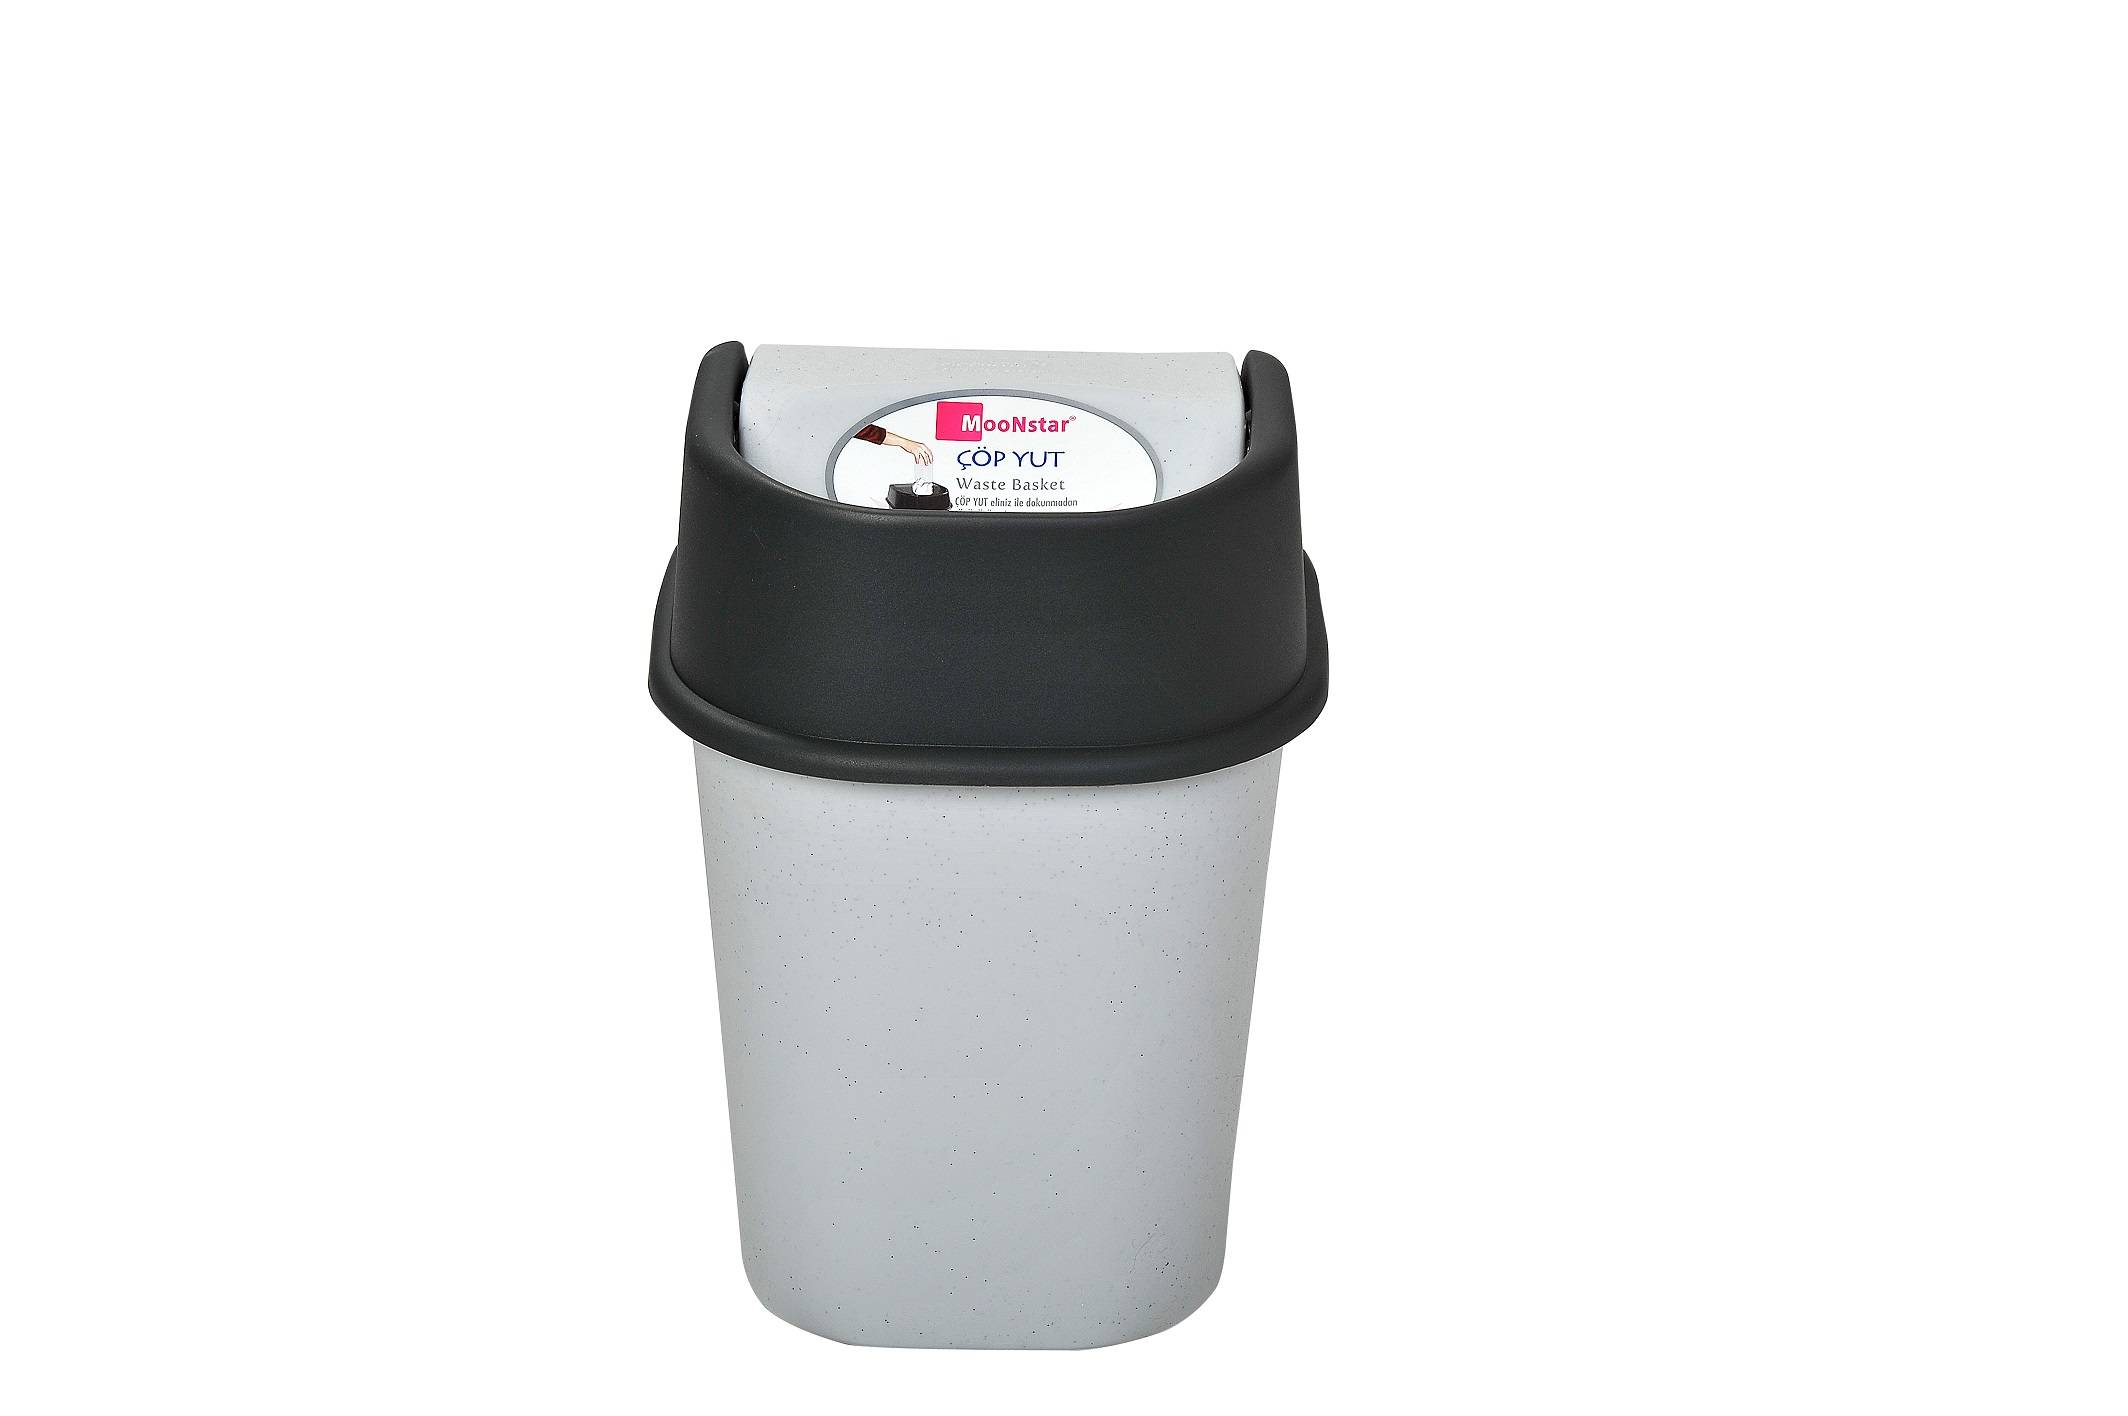 CPY-113 WASTE BASKET